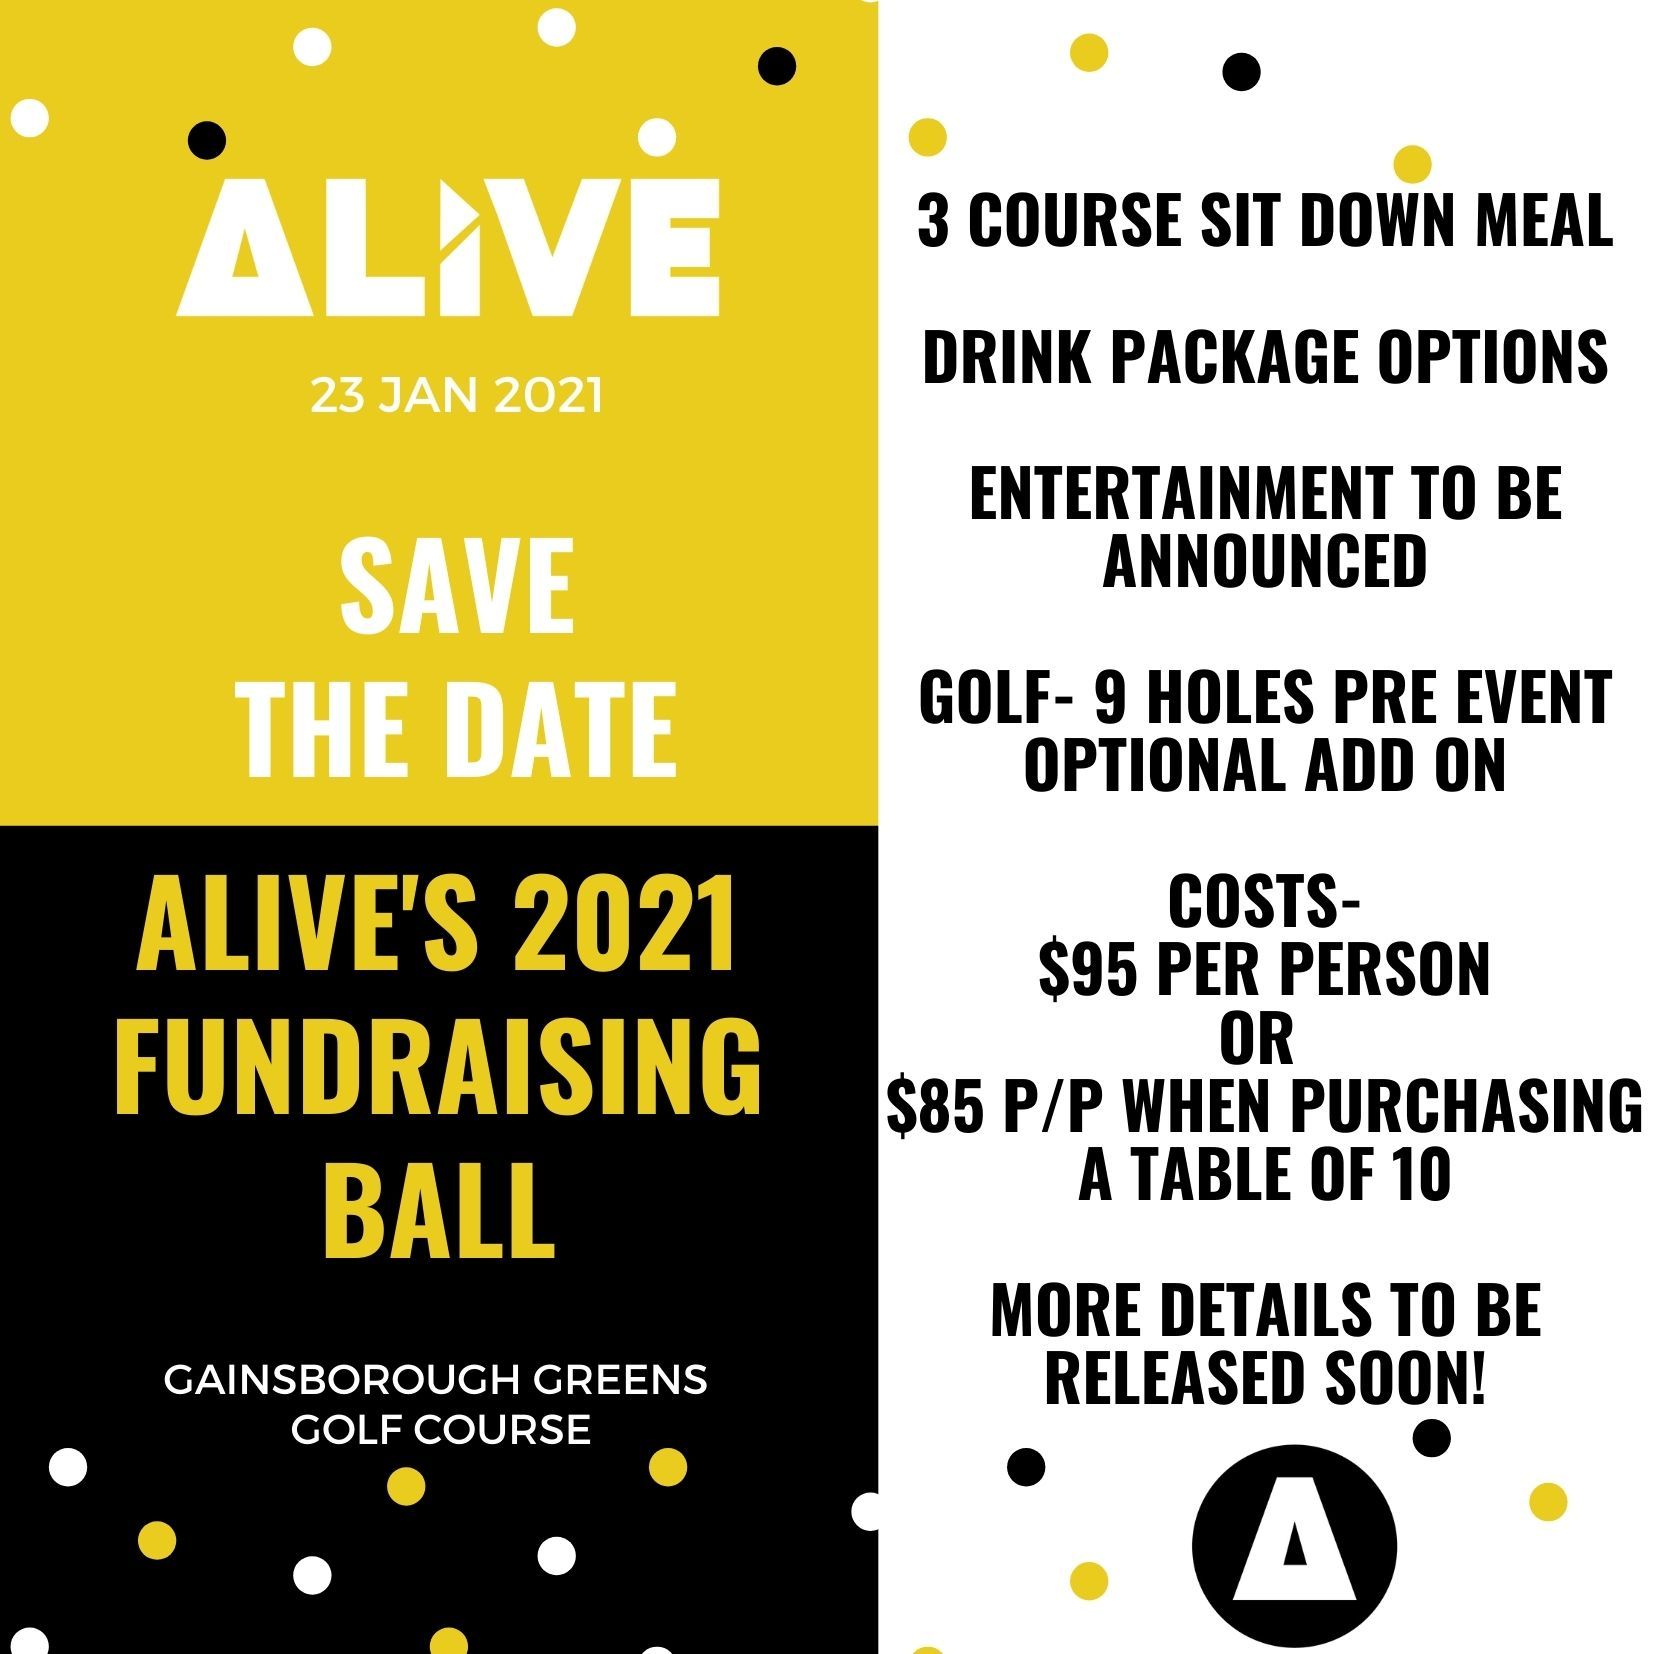 Save the date – ALIVE Ball 23 Jan 2021